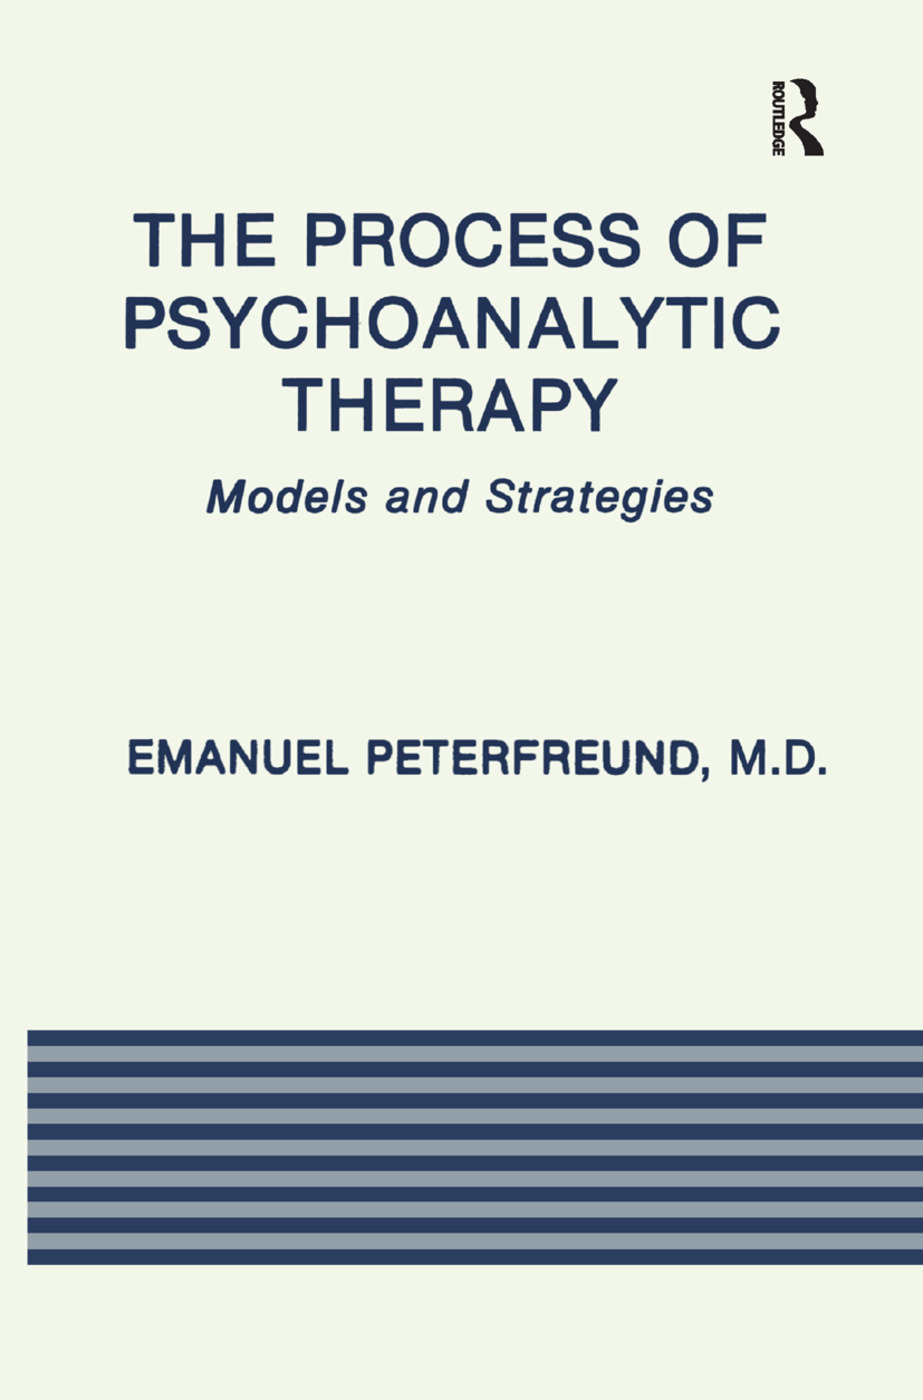 A what therapist is psychoanalyst The Therapist's